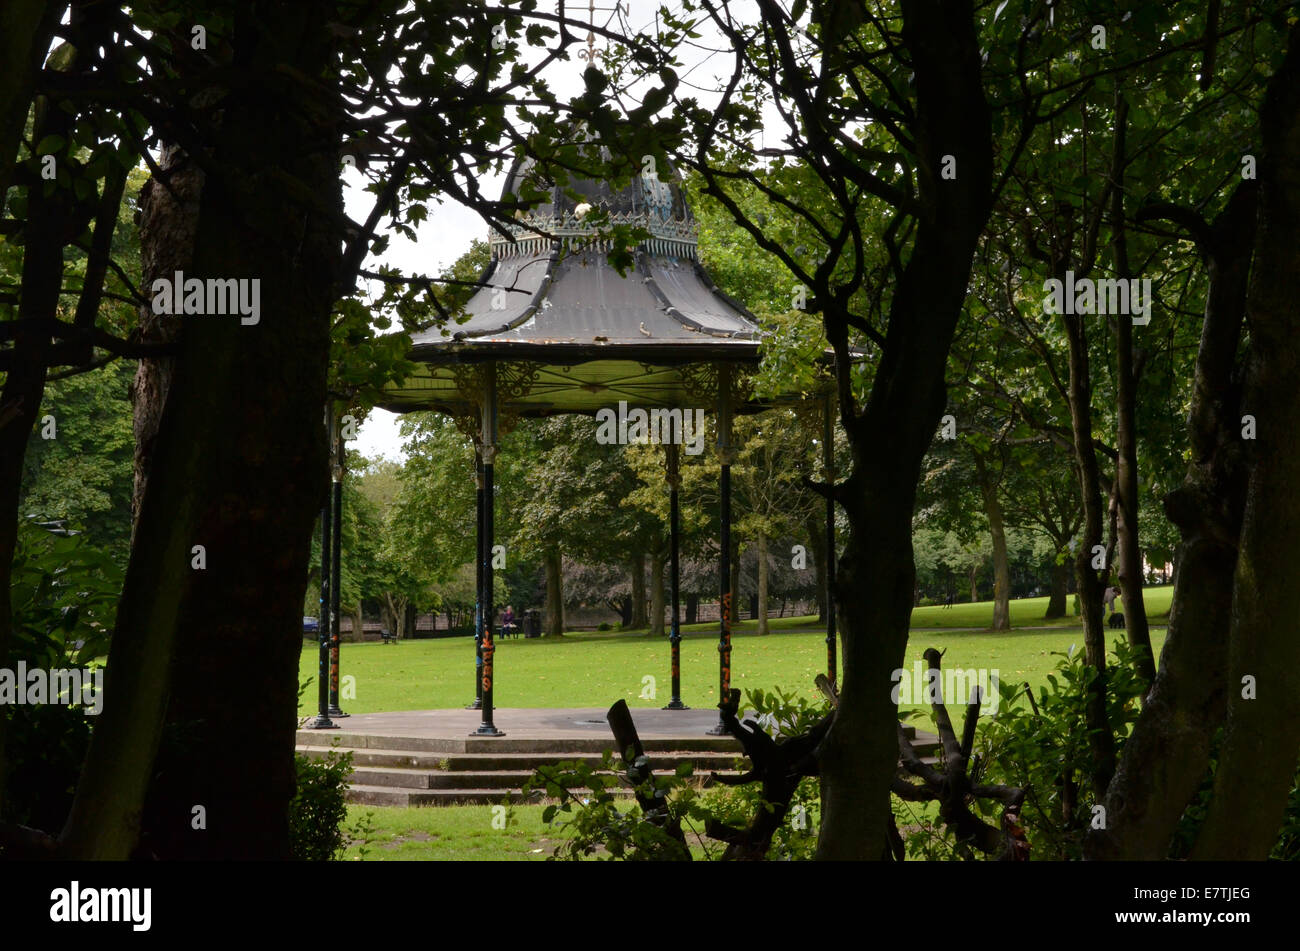 Overtoun Park host's a cast iron bandstand which was installed in 1914, it is in a very bad state of repair. - Stock Image